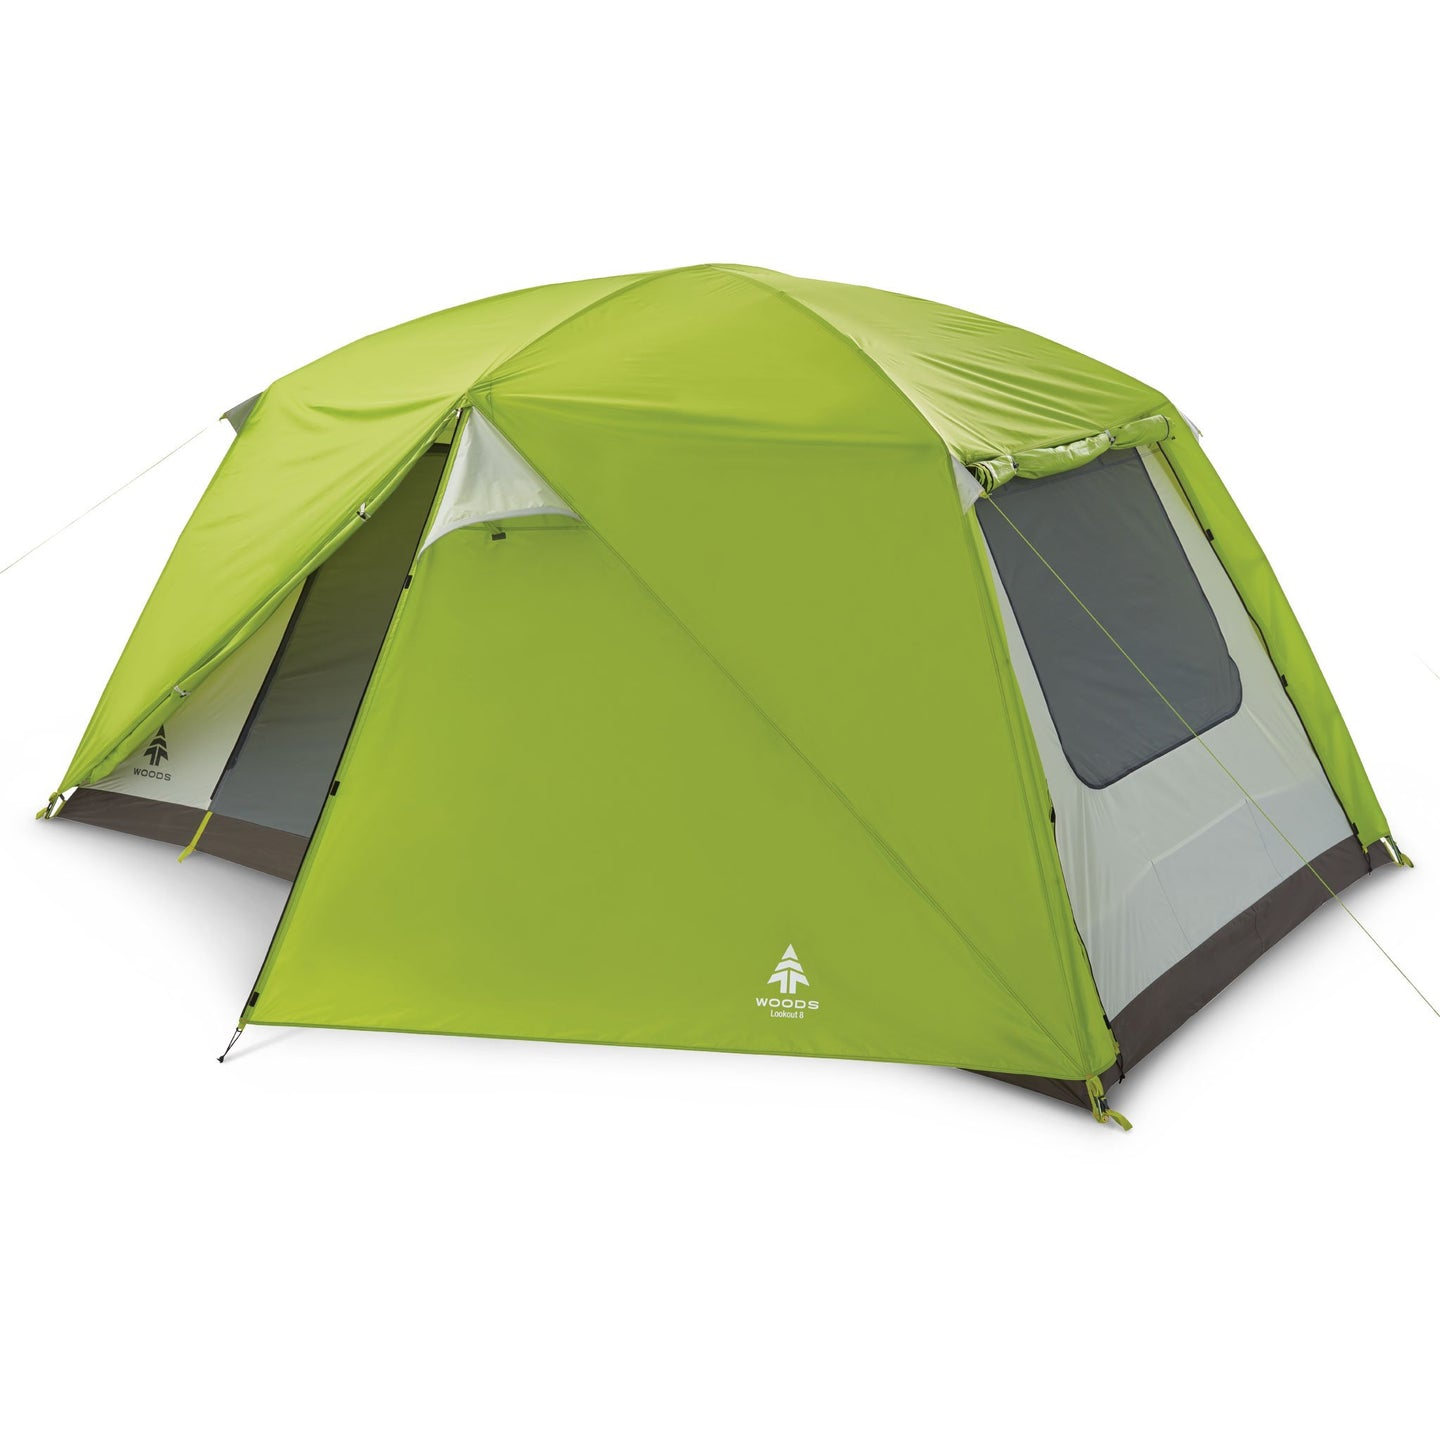 Woods Lookout Lightweight 6-Person 3 Season Tent